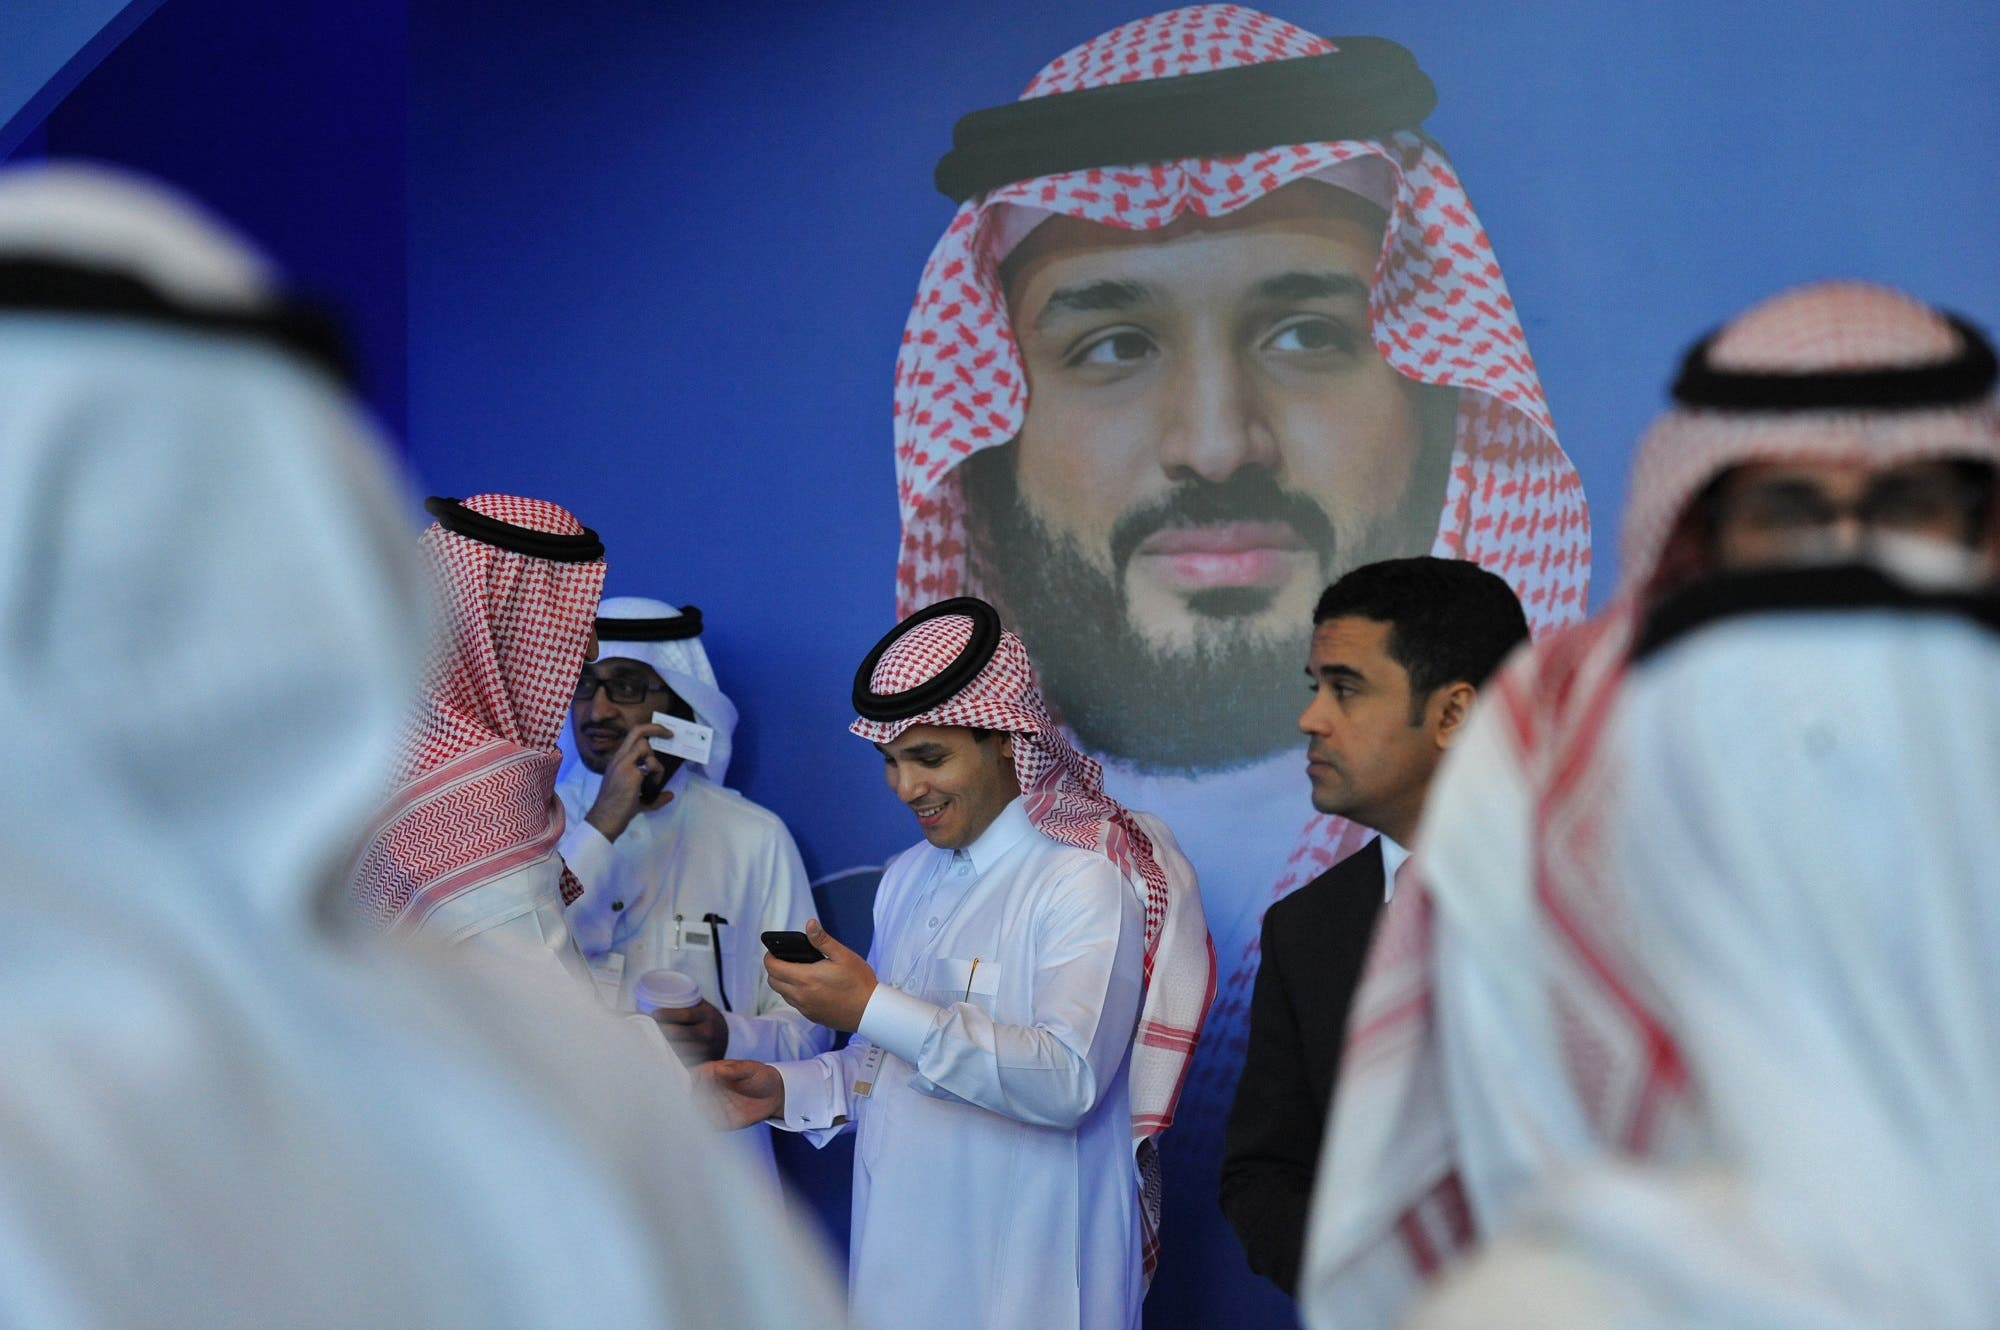 Saudi men chat in front of a poster of Saudi Crown Prince Mohammed bin Salman during the MiSK Global Forum in Riyadh, on November 15, 2017. (AFP)